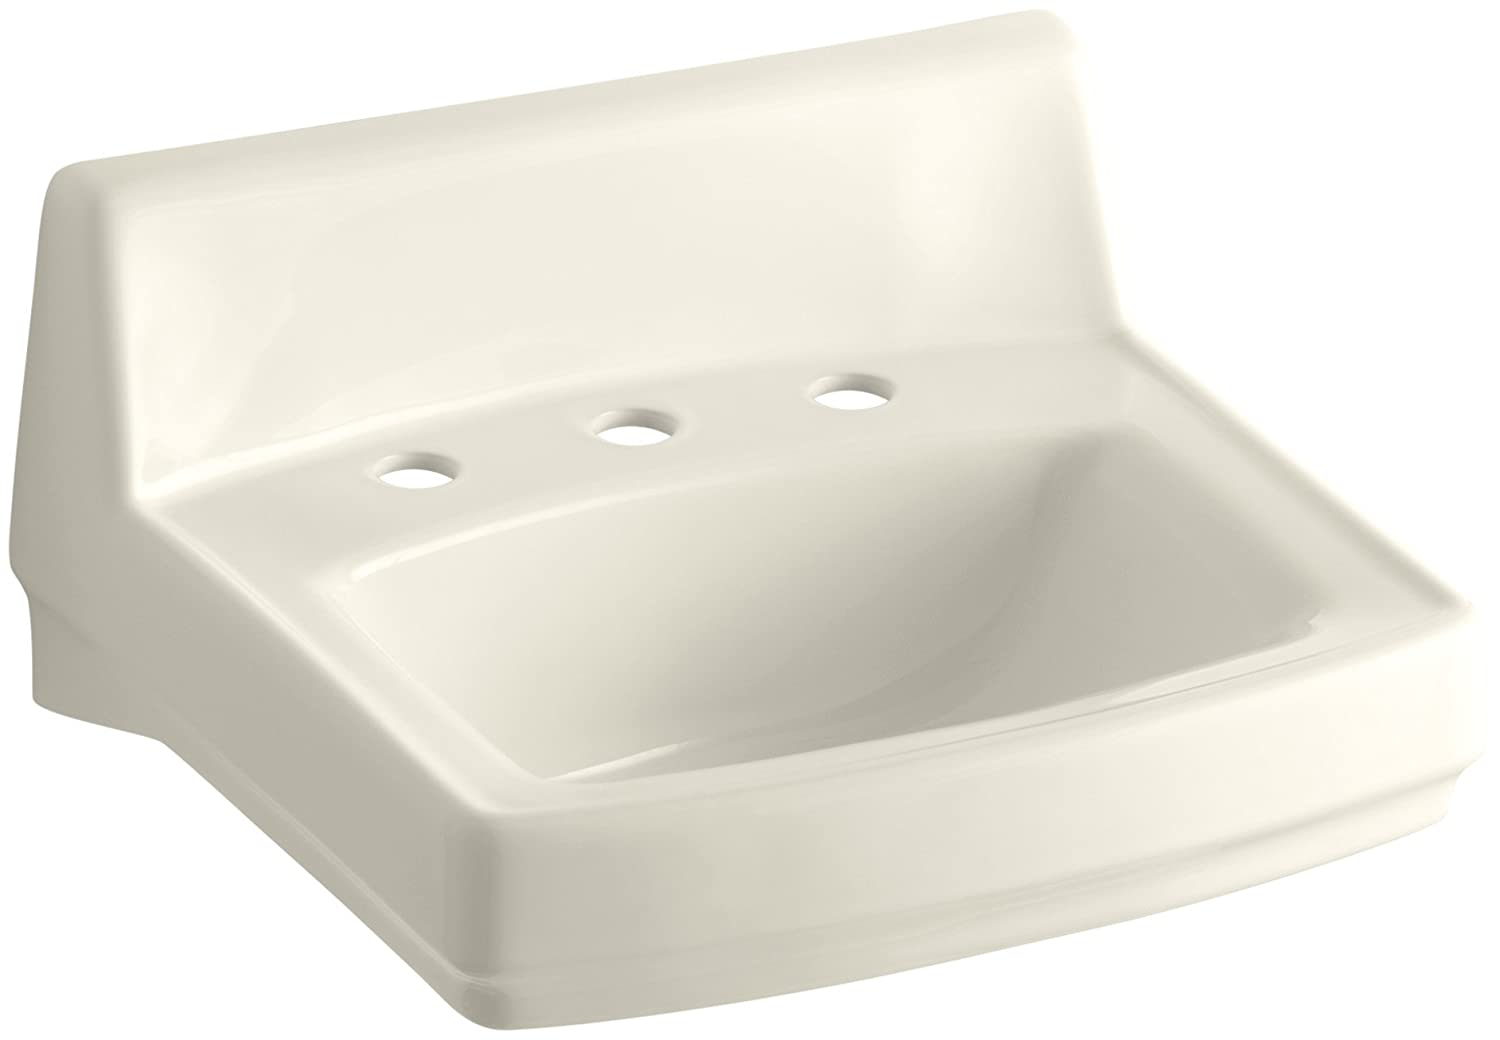 kohler k20300 greenwich wallmount bathroom sink white wall mounted sinks amazoncom